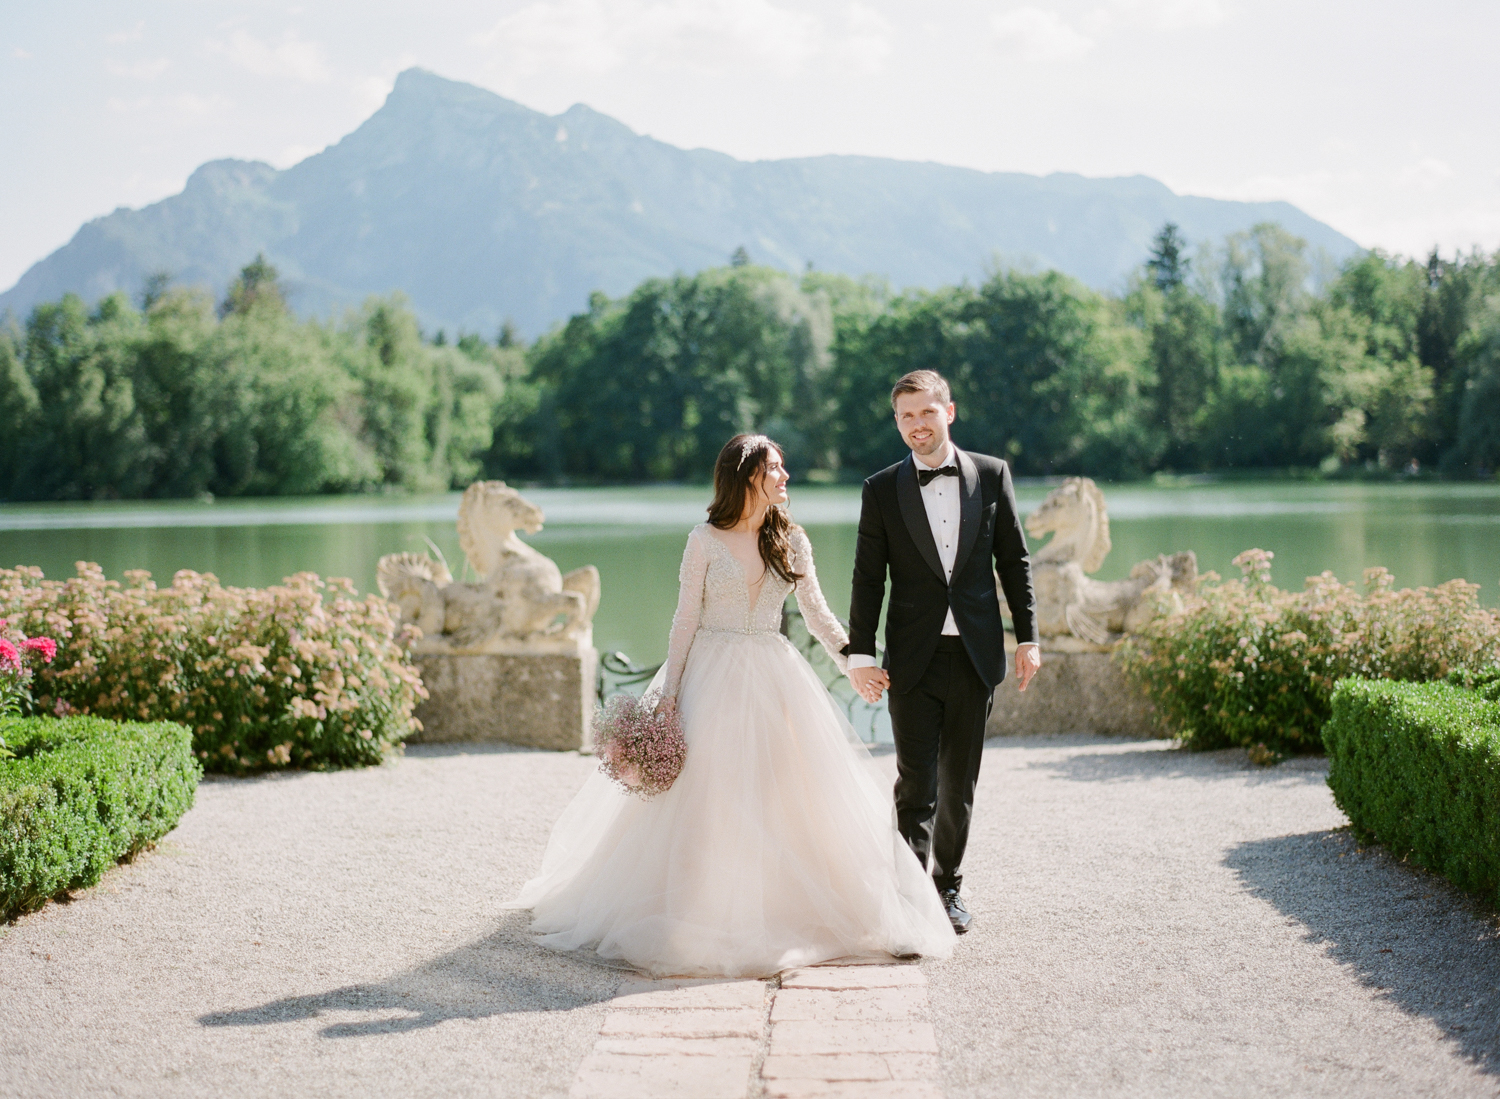 lake_como_wedding_photographer_nikol_bodnarova_154.JPG